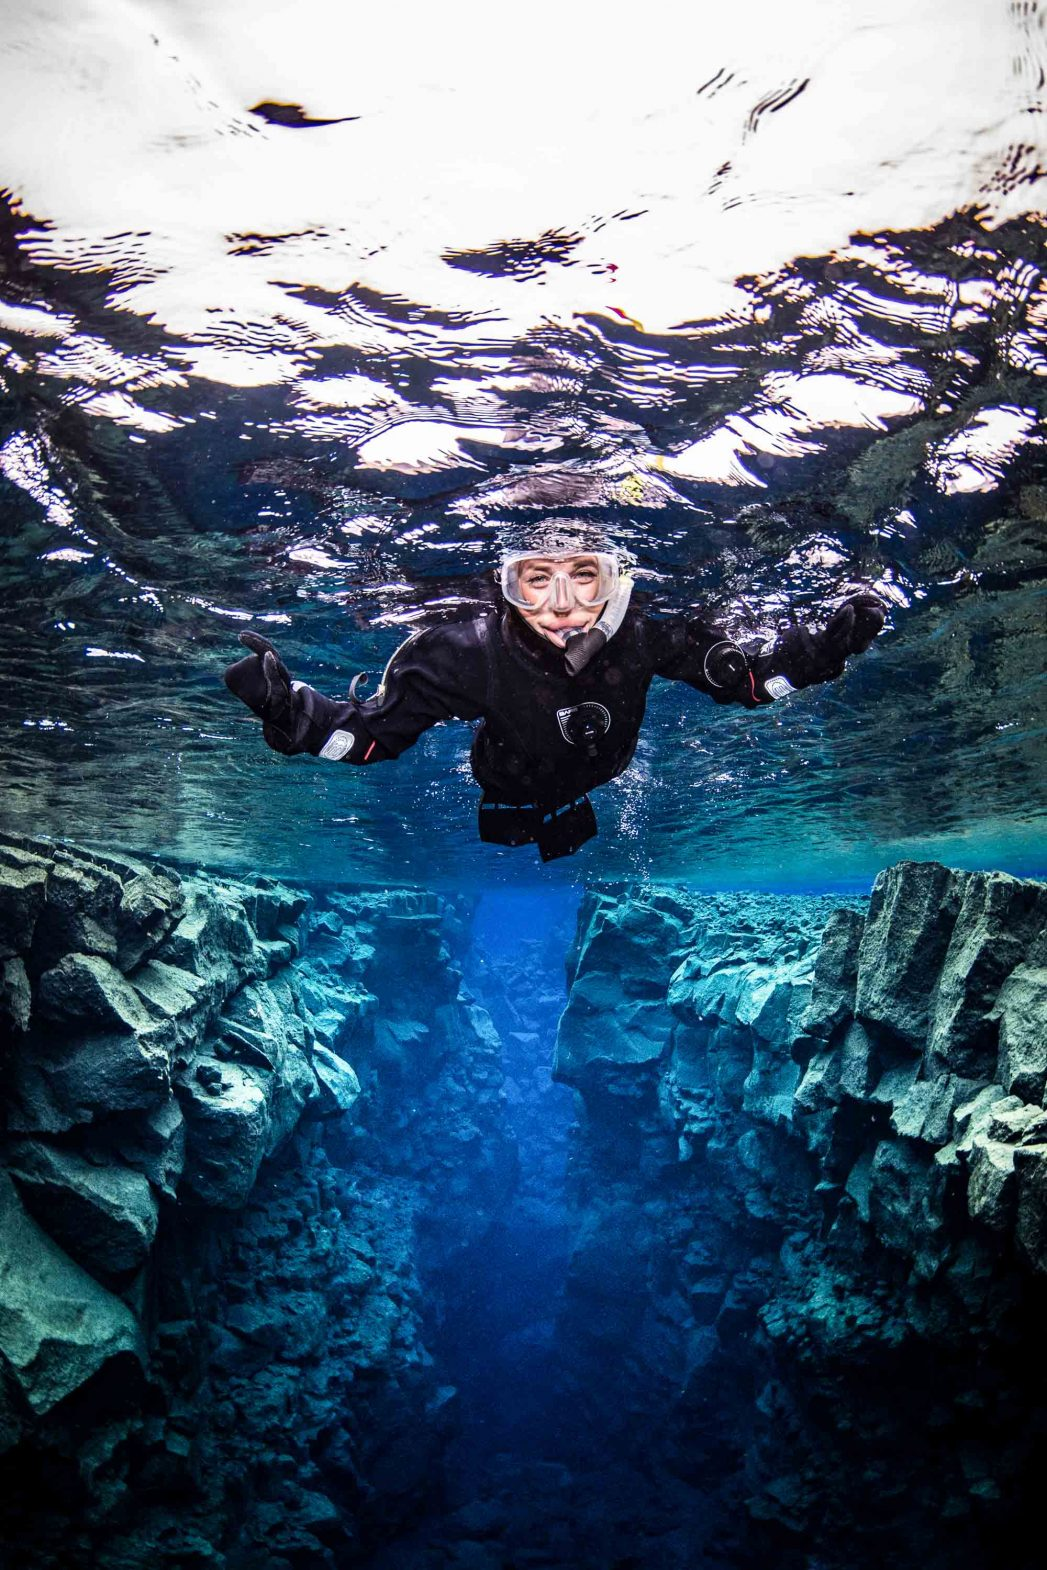 Snorkeling in the extraordinary geology of Iceland's Silfra fissure.